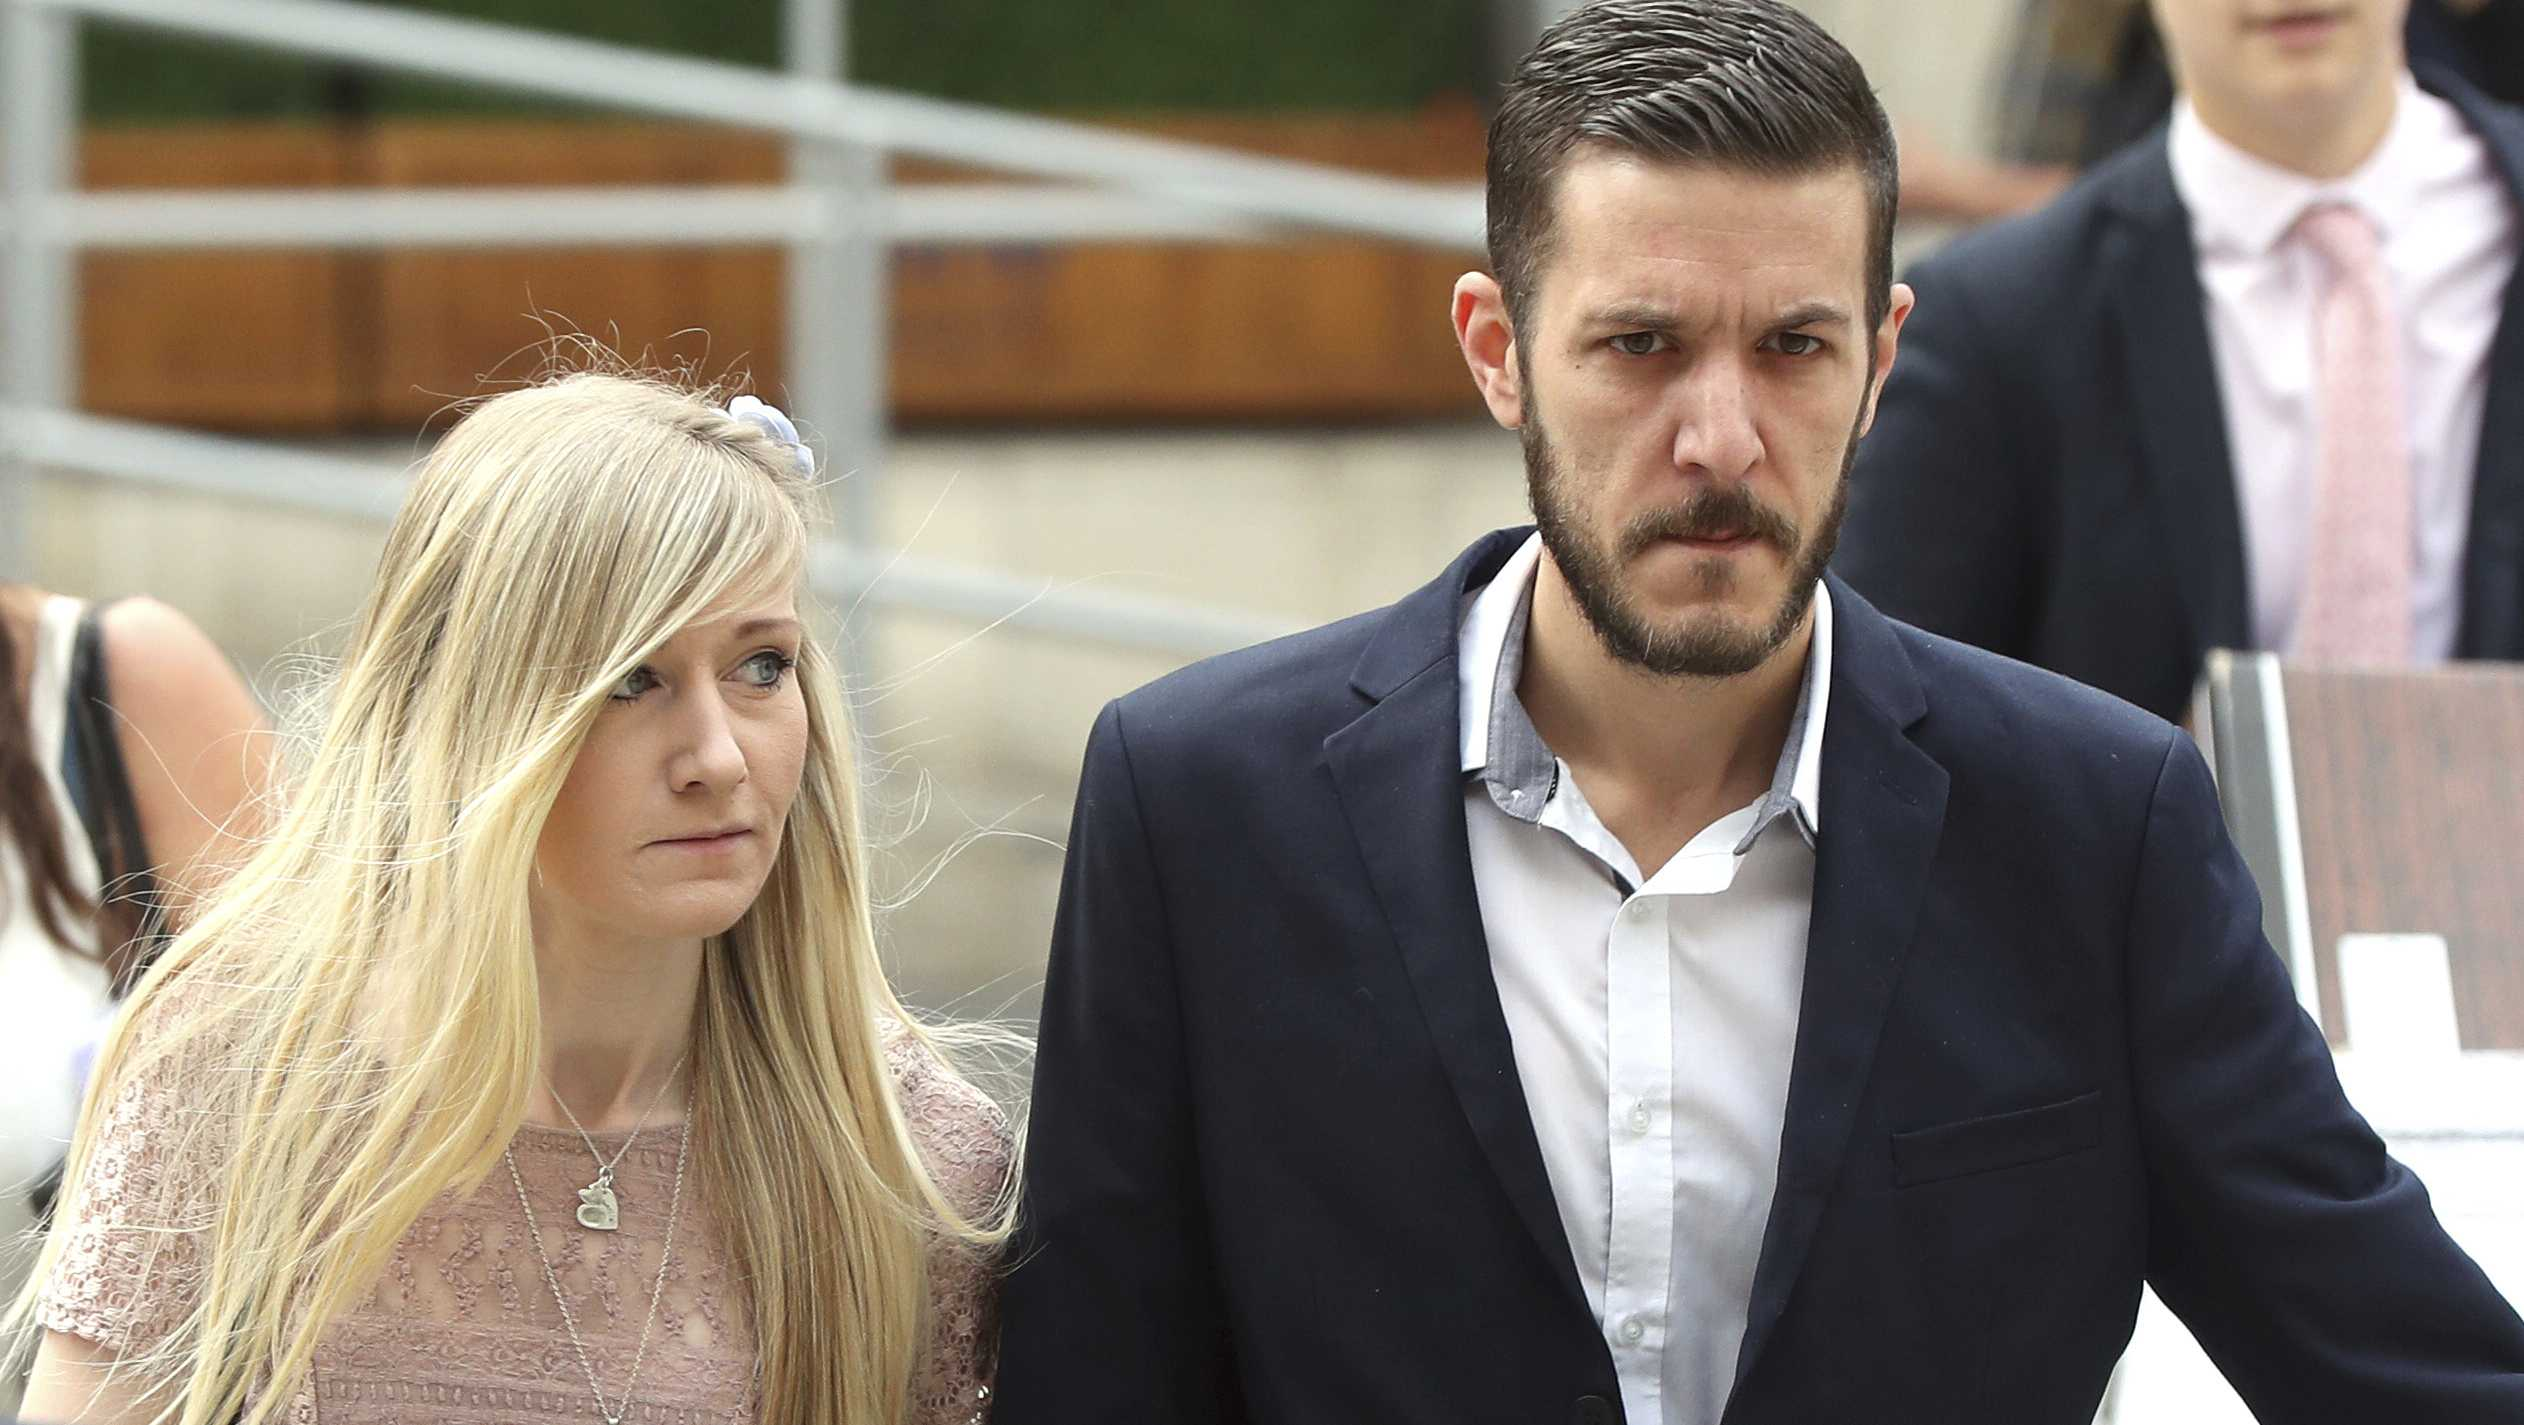 The parents of critically ill baby Charlie Gard, Connie Yates and Chris Gard arrive at the Royal Courts of Justice in London. Thursday July 13, 2017.